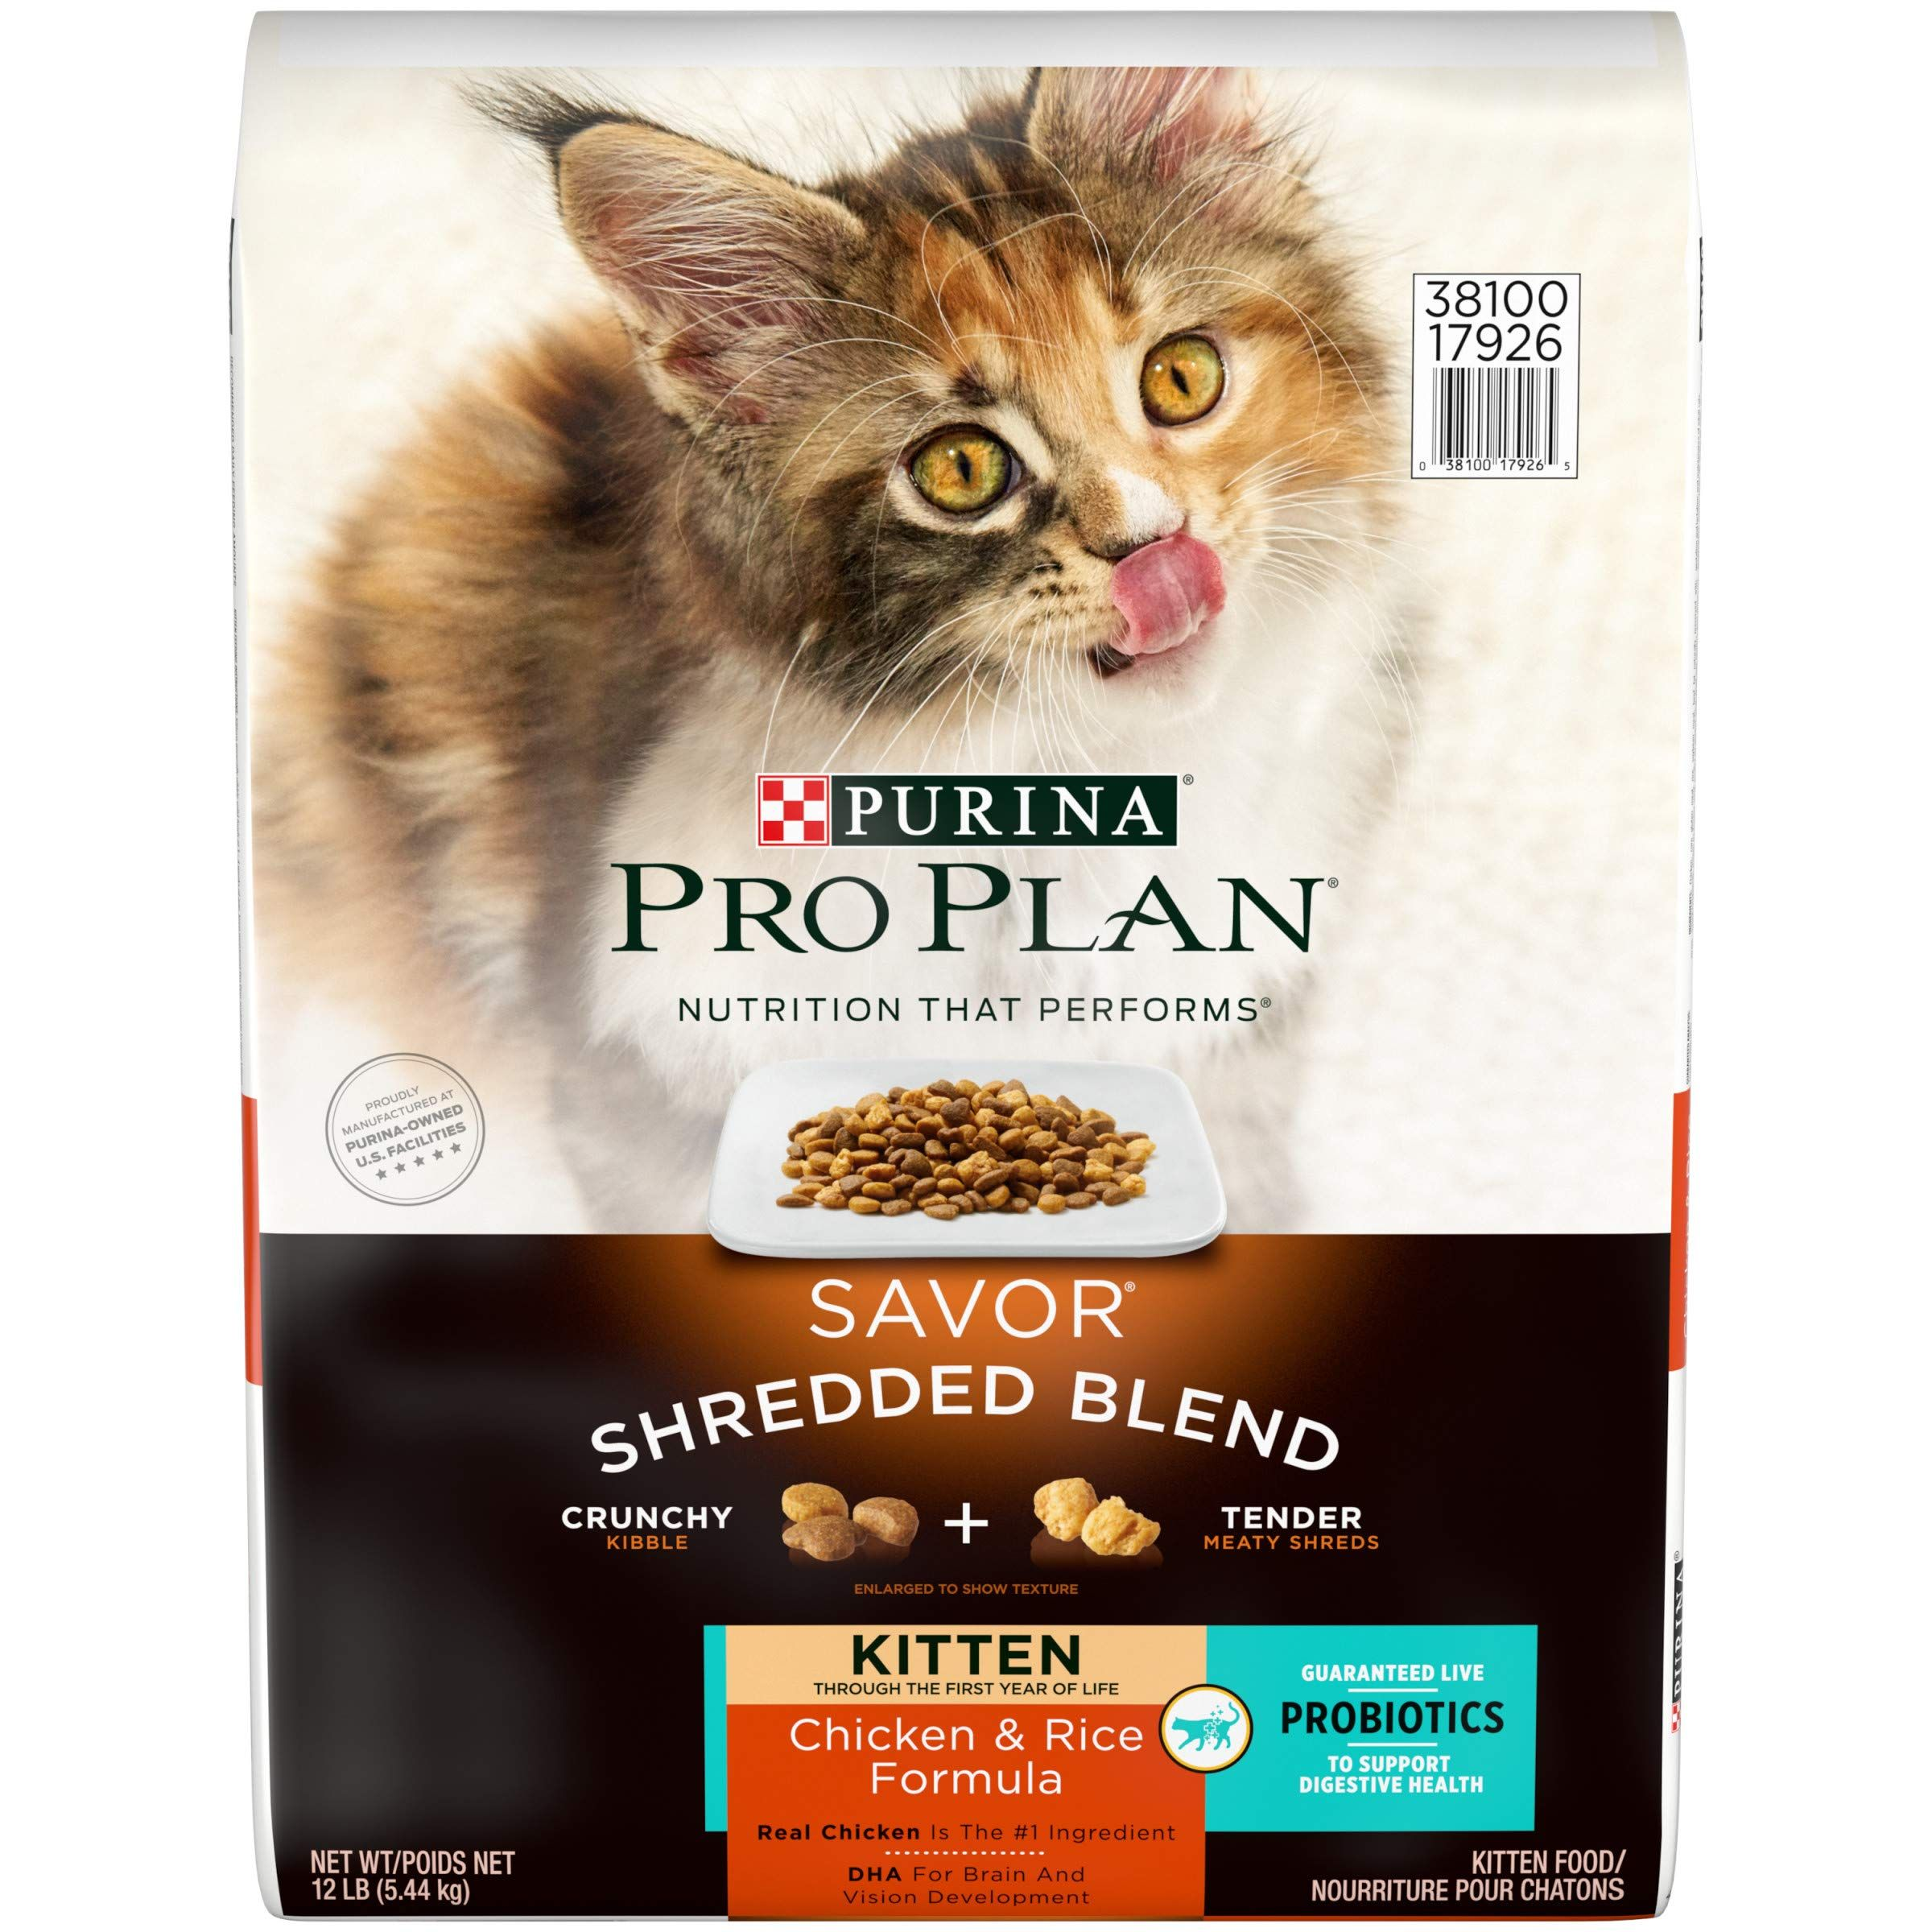 Purina Pro Plan Kitten Dry Cat Food Want Additional Info Click On The Image As An Amazon Associate I Earn From In 2020 Purina Pro Plan Kitten Food Dry Cat Food